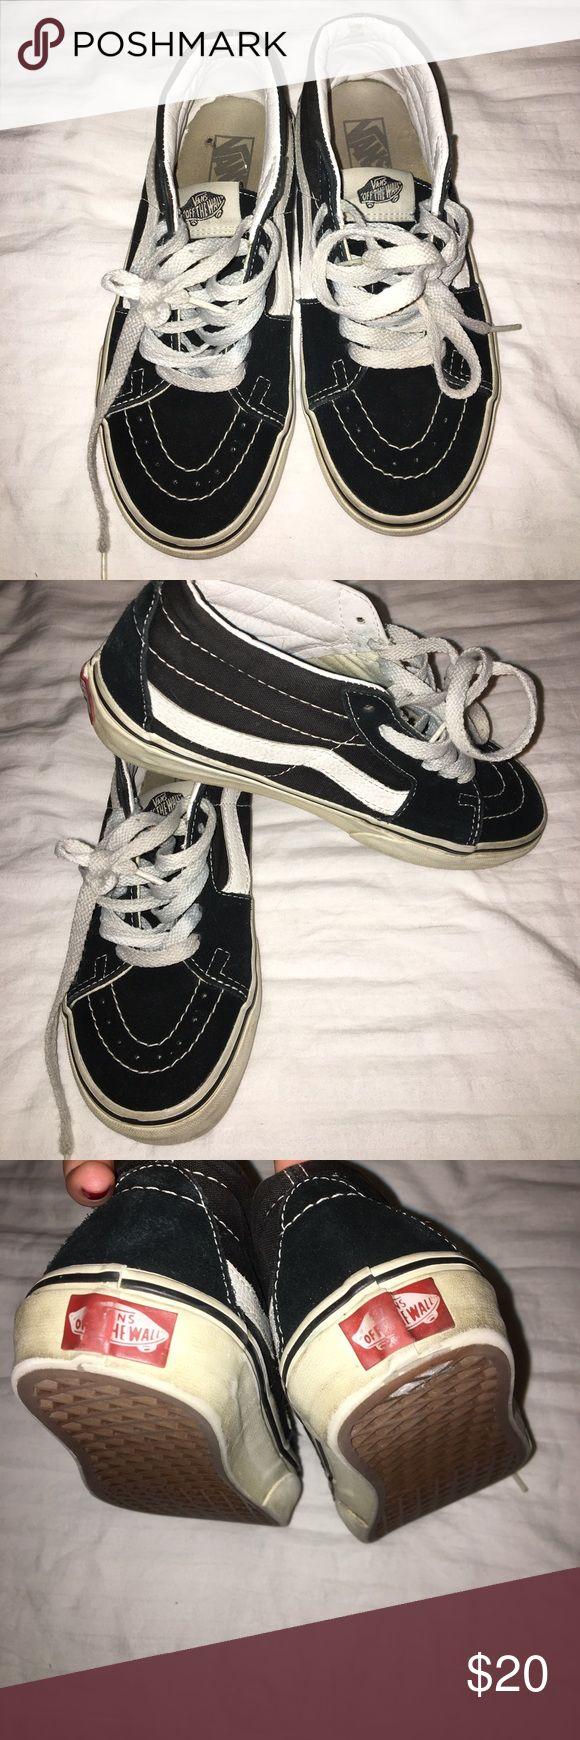 Vans Low top Skate Highs Kind of worn but still cute and wearable !!! Vans Shoes